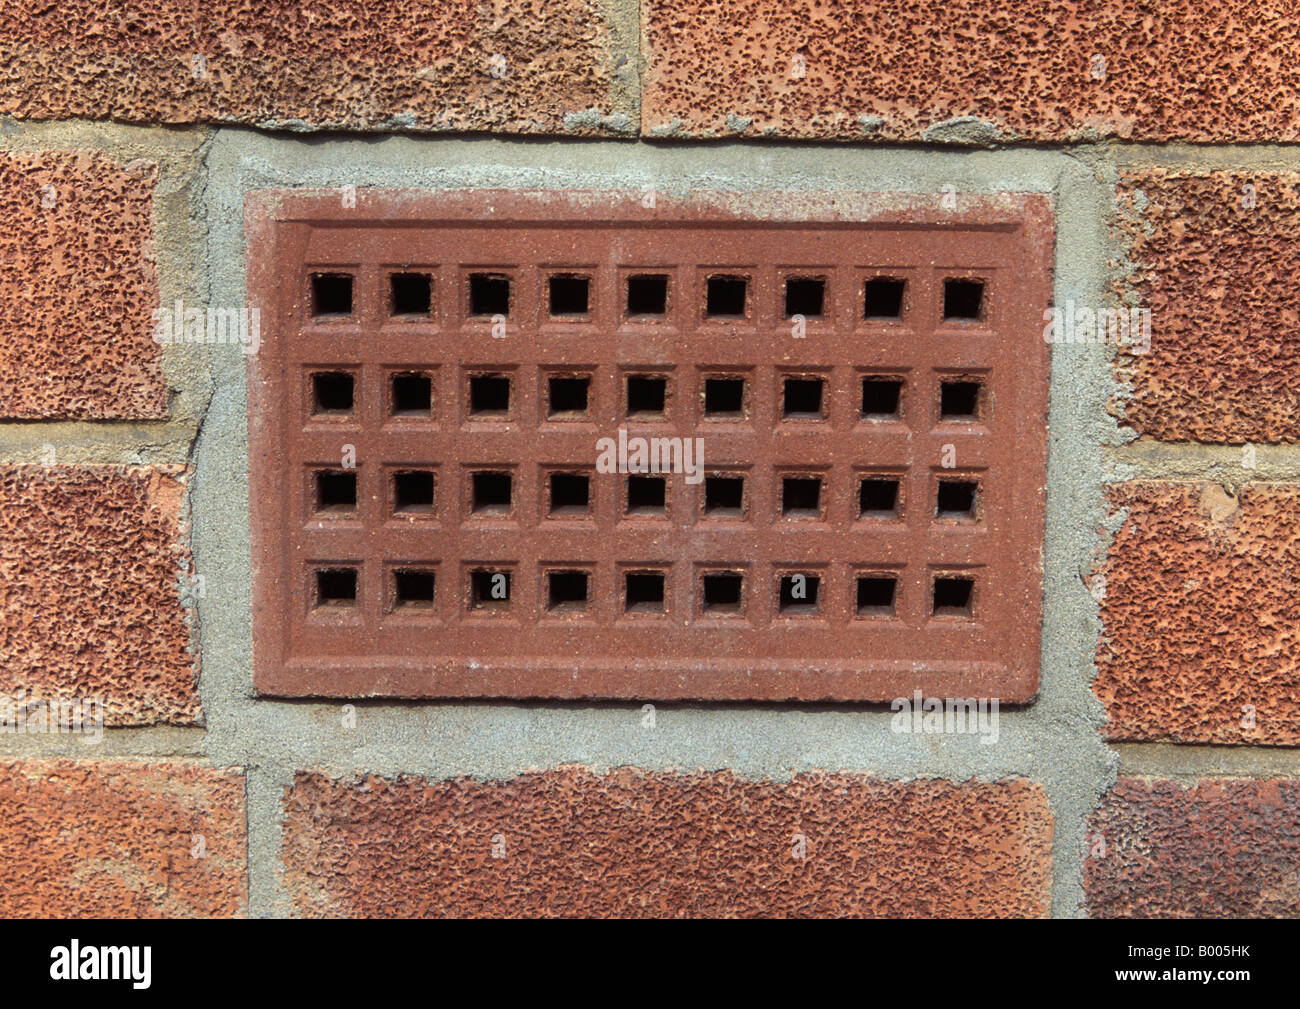 Terracotta Air Brick In Red Brick Wall Stock Photo. Outdoor Furniture Ipe Wood. Patio Furniture Sale Reno. Used Patio Furniture Guelph. Used Patio Furniture South Jersey